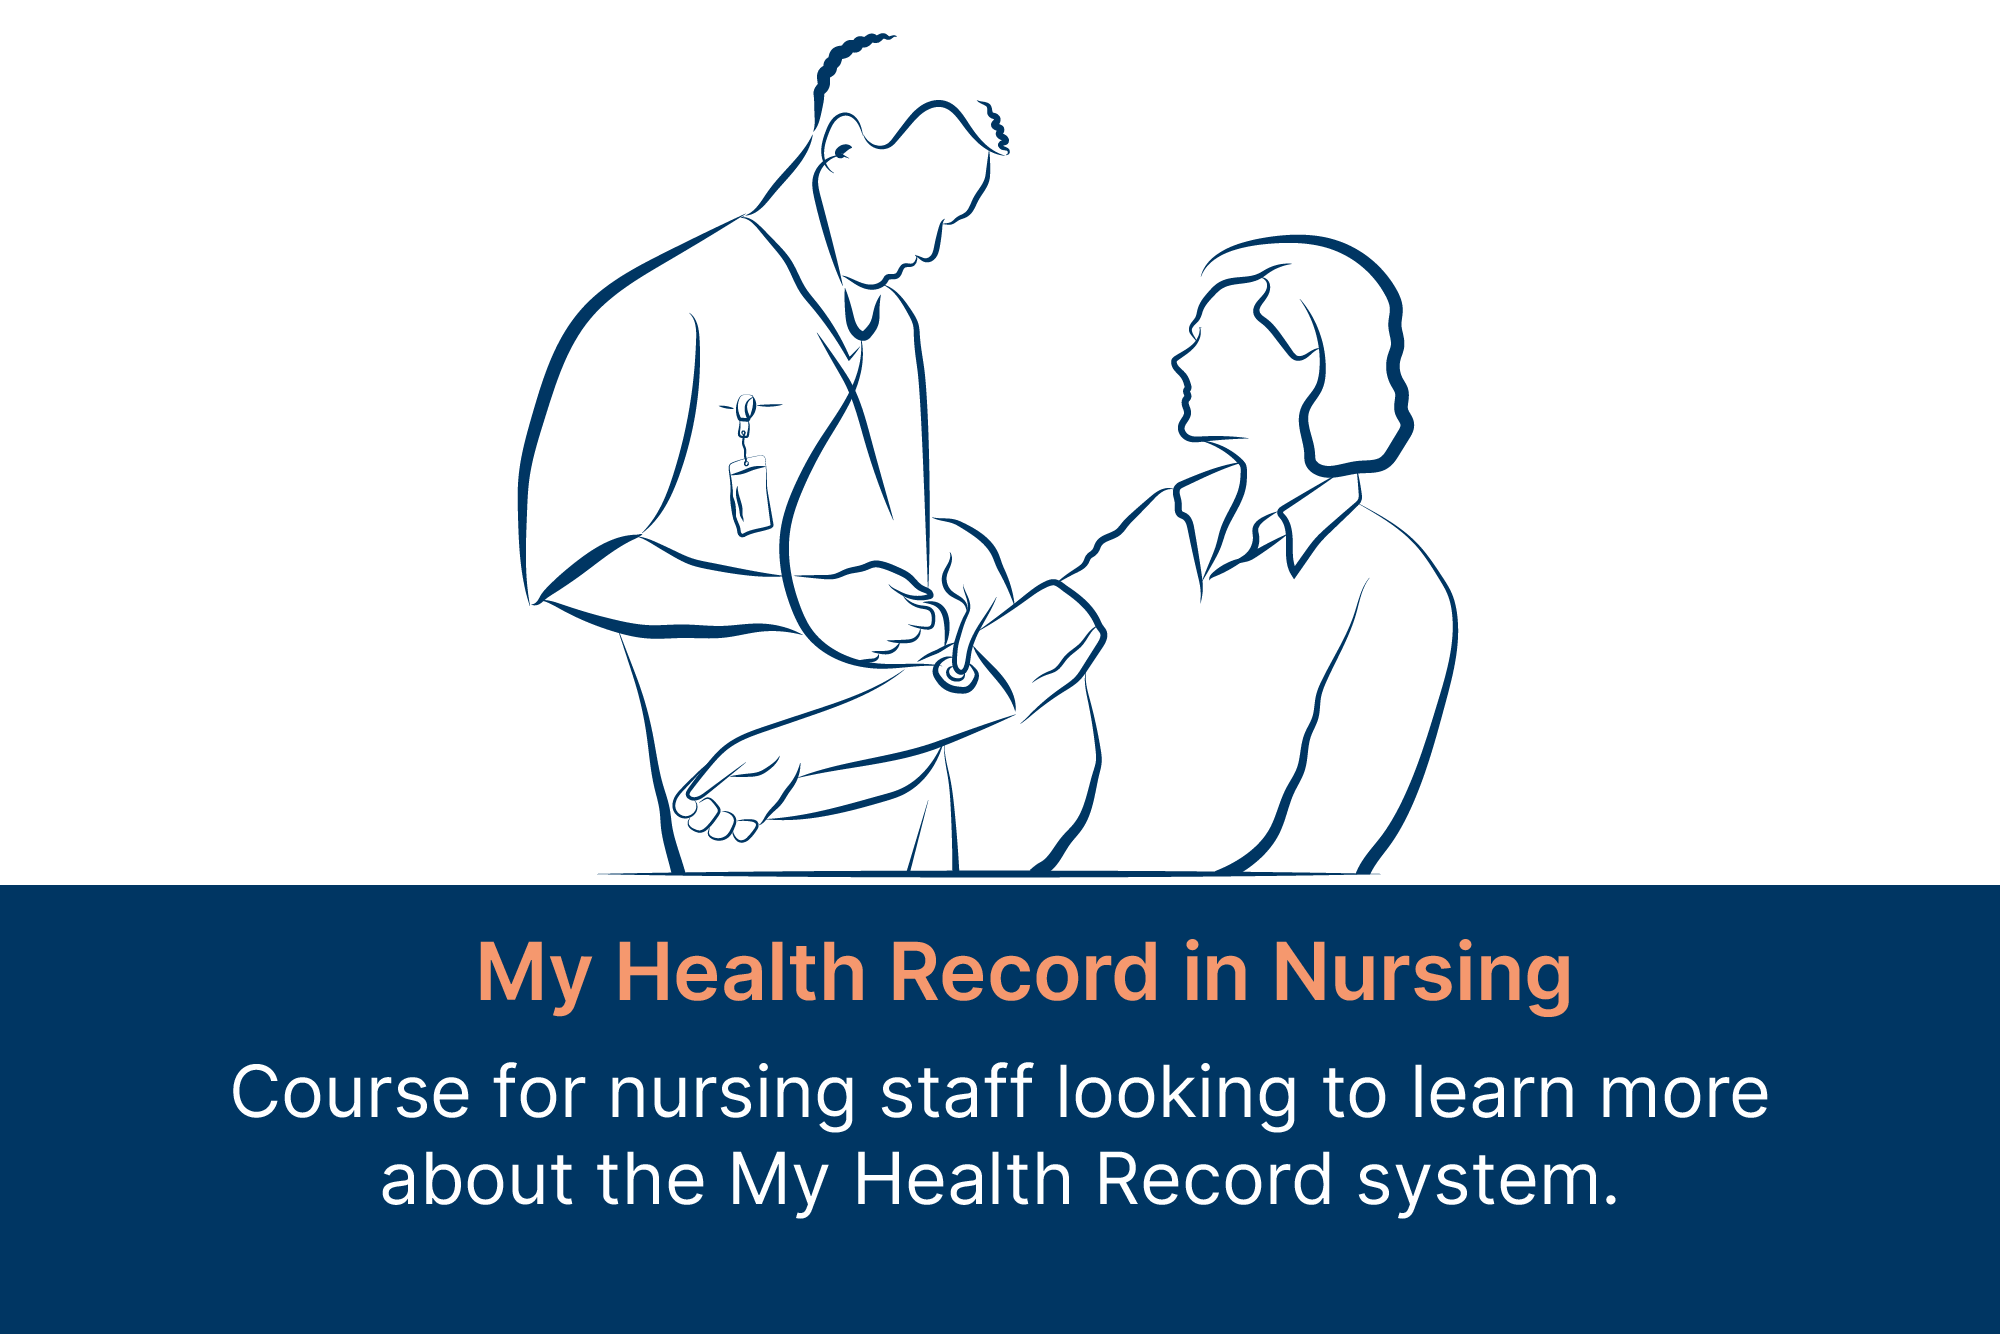 My health record in Nursing